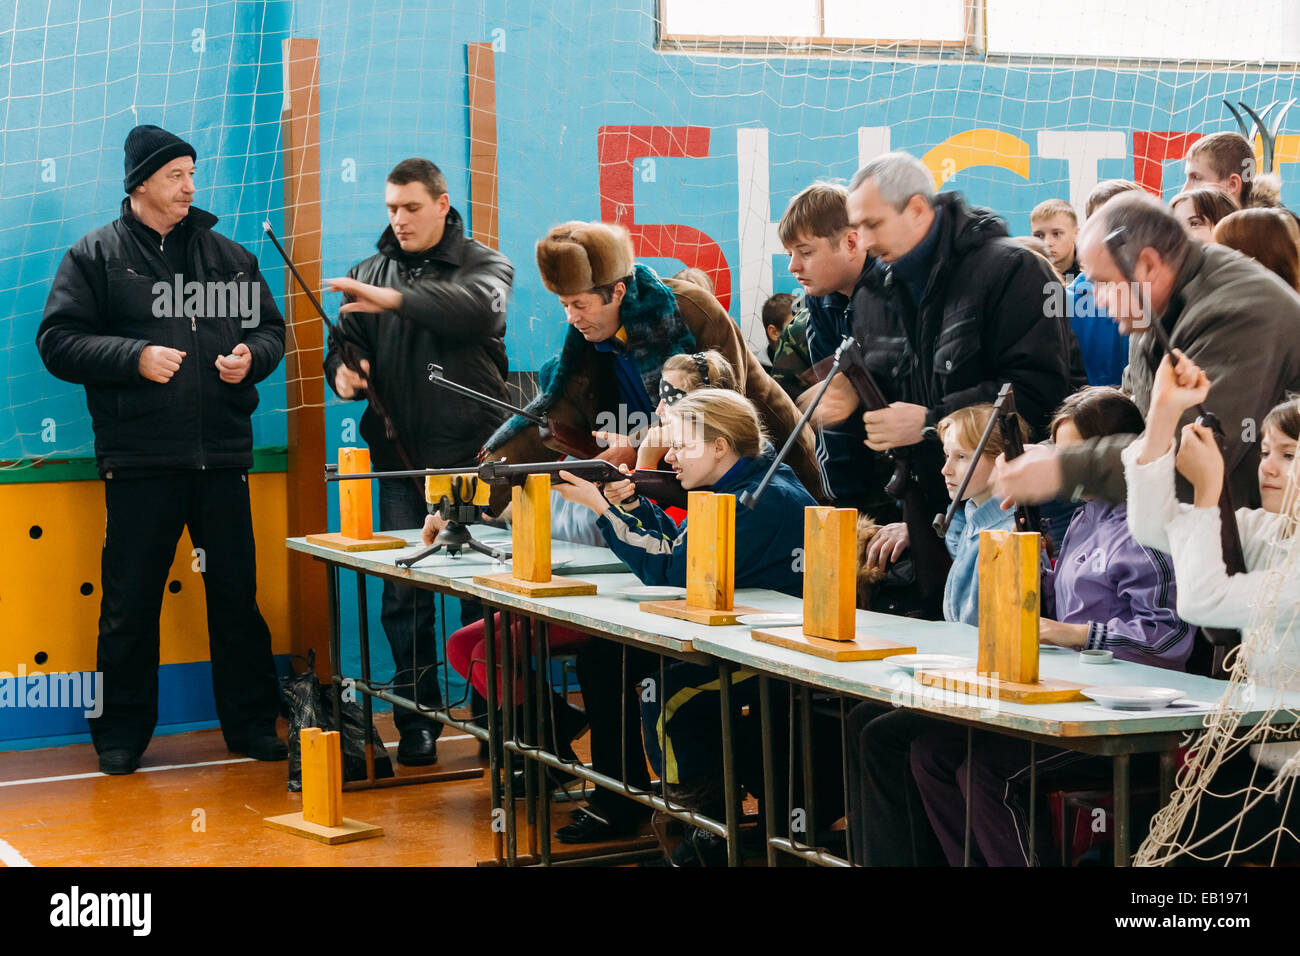 Belarusian secondary school pupils girls shooting an air rifle at a school sports competition 'Ski sniper' - Stock Image